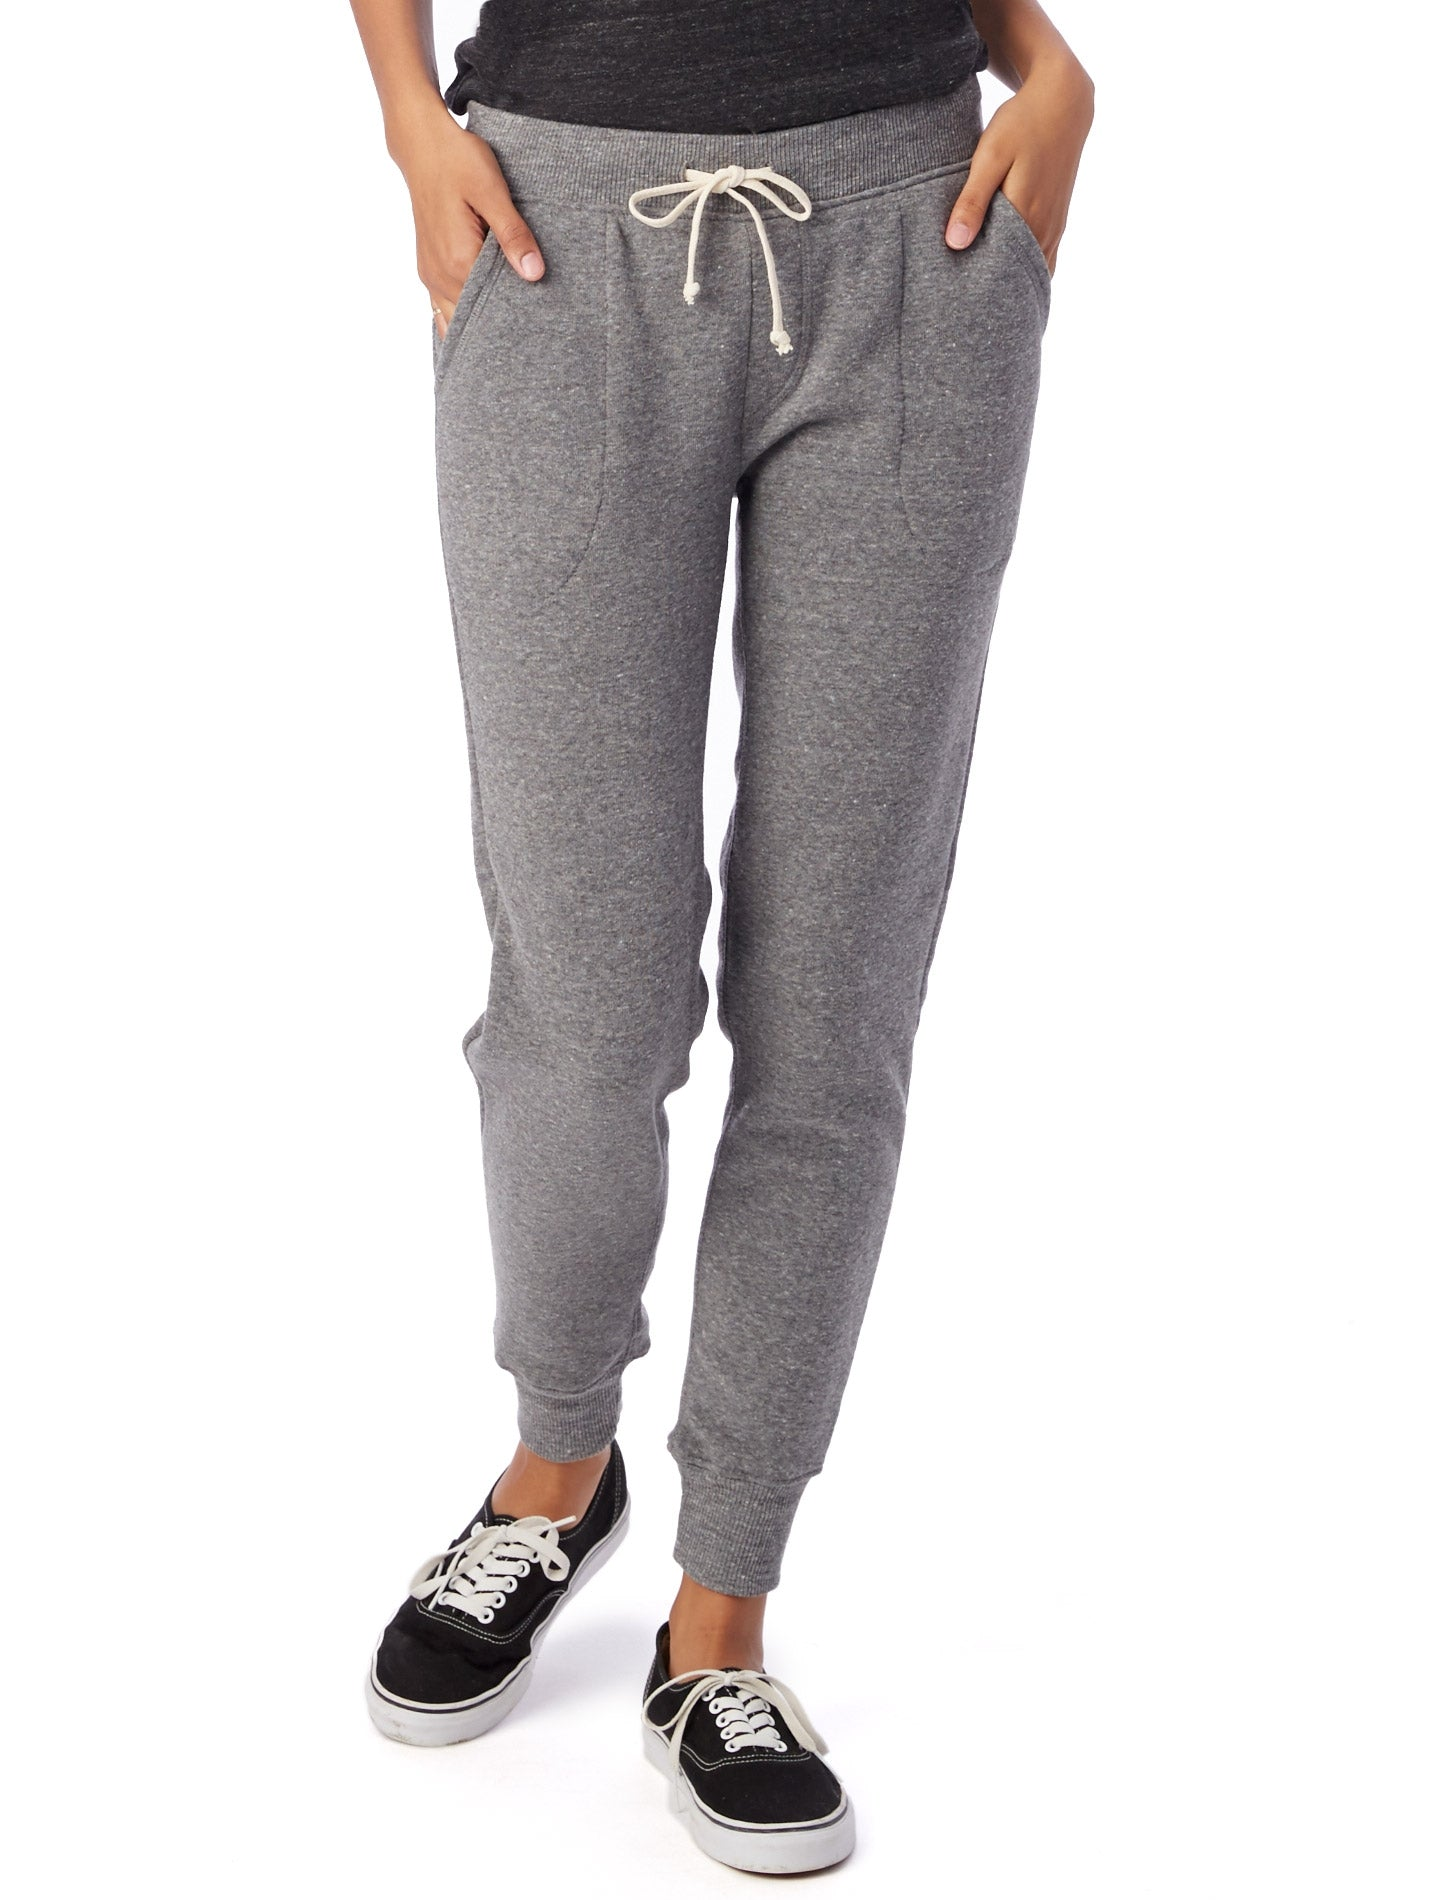 Women's Tri-Blend Jogger Sweatpants